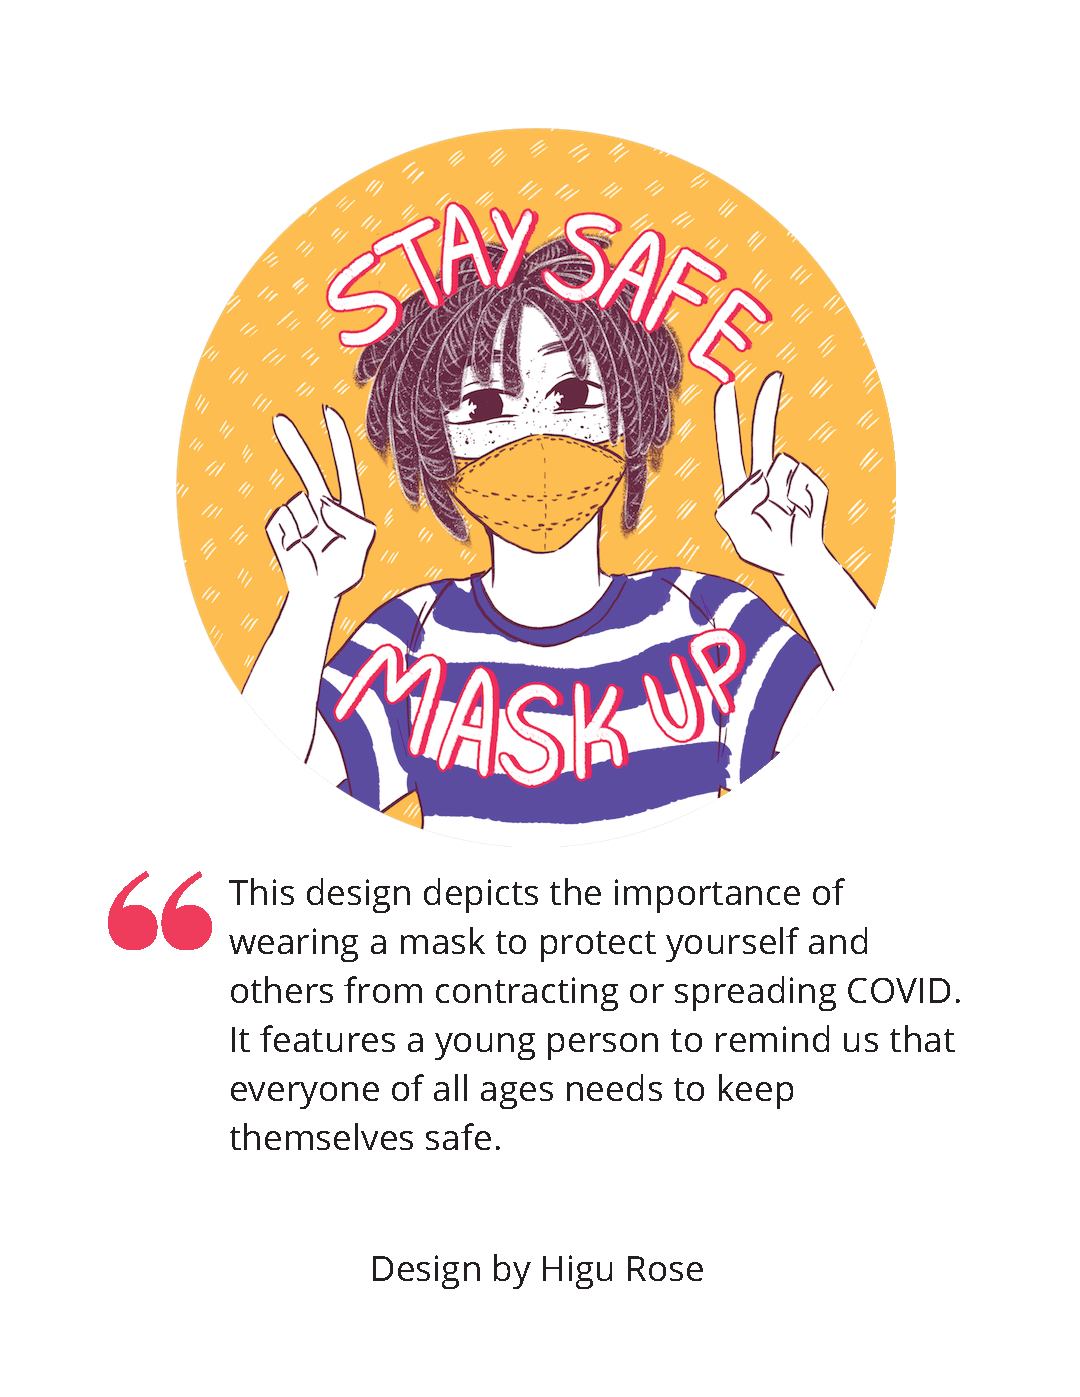 """Image shows a person in a blue and white striped shirt wearing a mask and holding up two peace signs, with the text """"Stay Safe Mask Up"""" on top."""